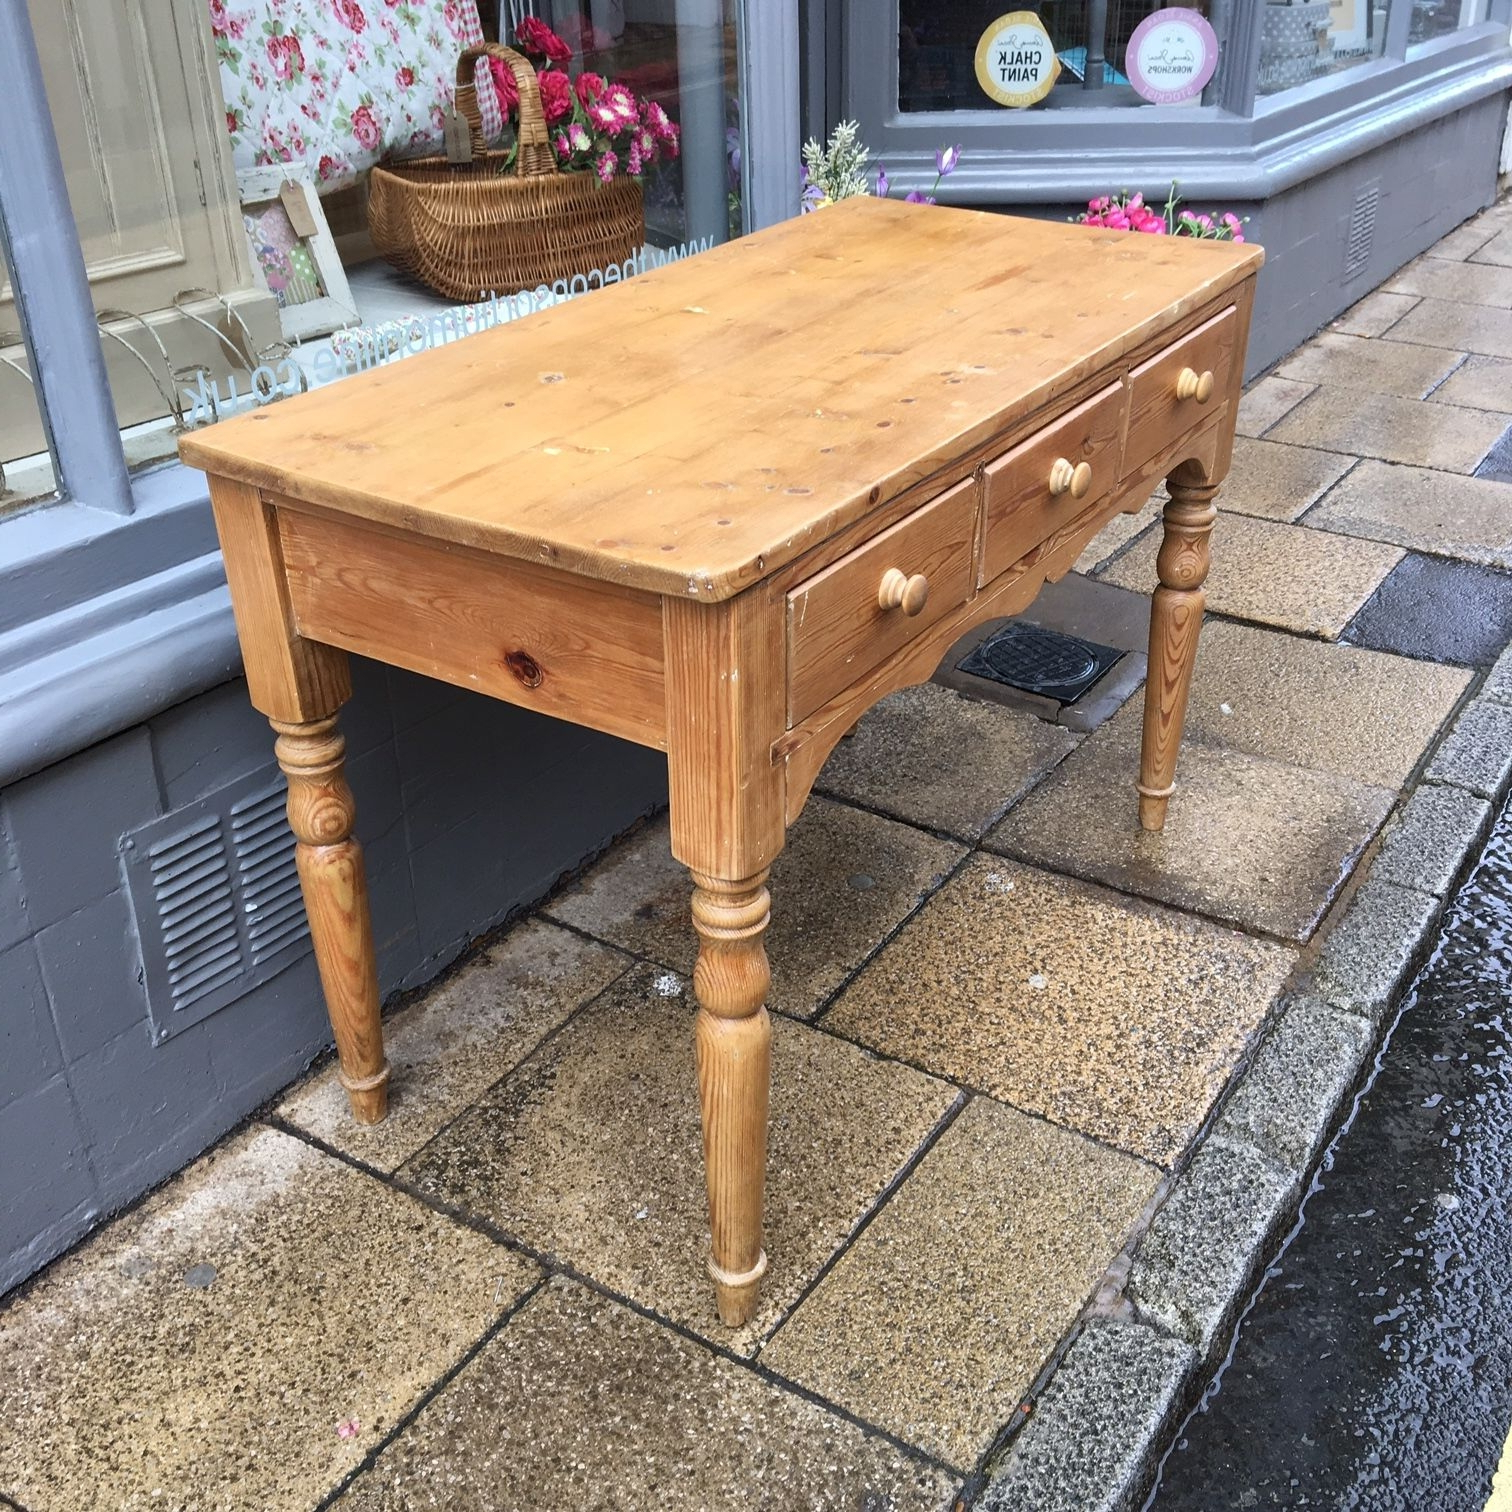 Antique Pine Coffee Tables Intended For Most Current Antique Pine Side Table – The Consortium, Vintage Furniture (View 4 of 20)